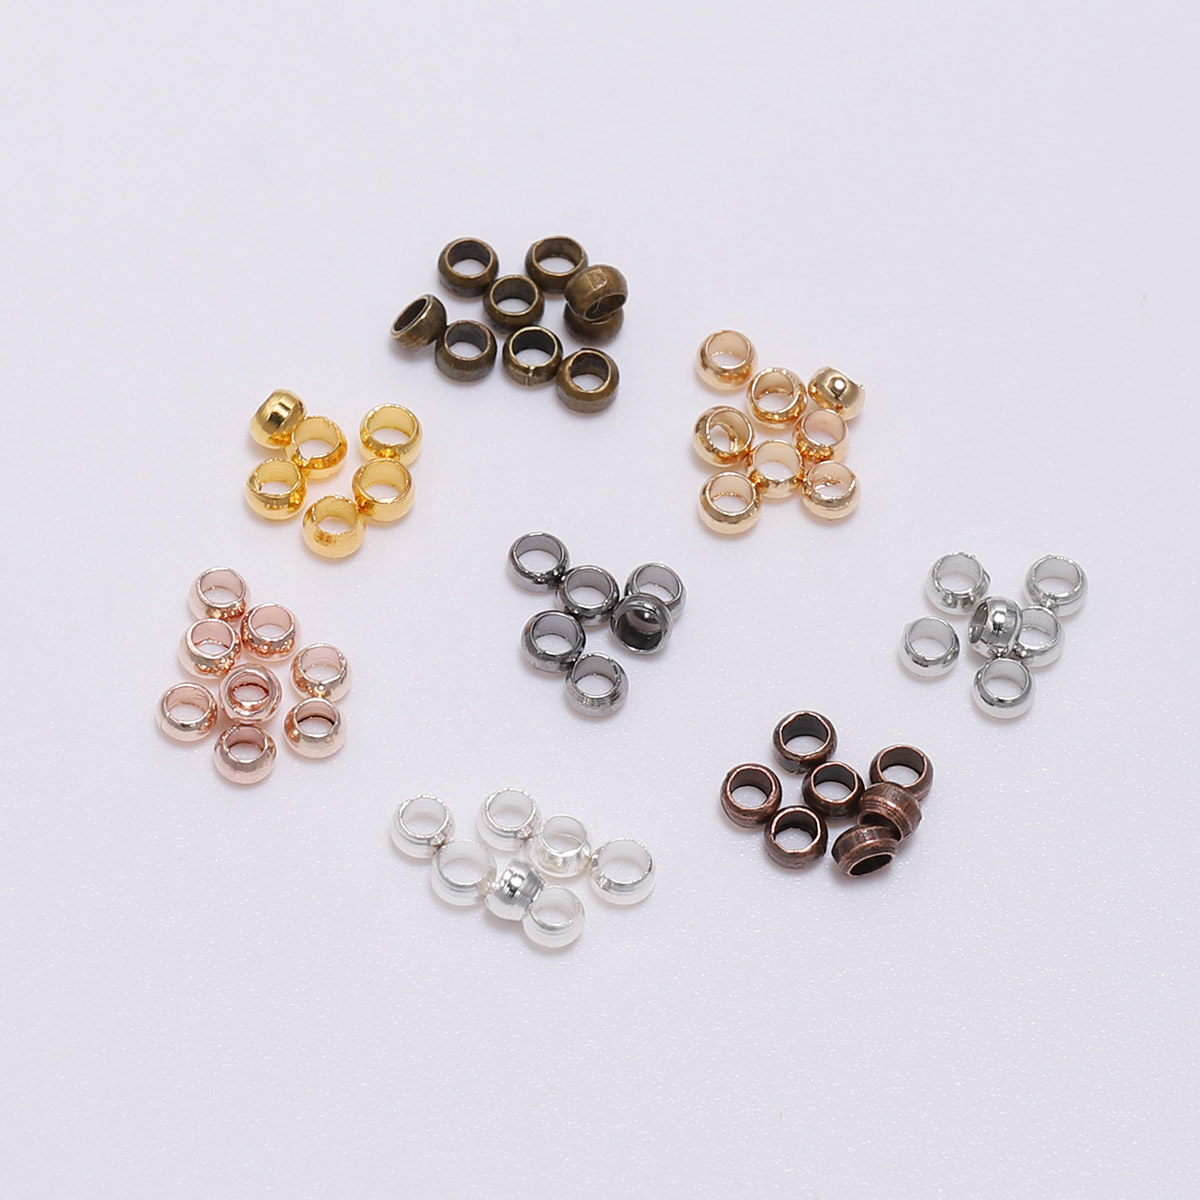 Silver//Pink Rhodium Plated Alloy Large Hole Beads 6 x 11mm 10 Pcs DIY Jewellery